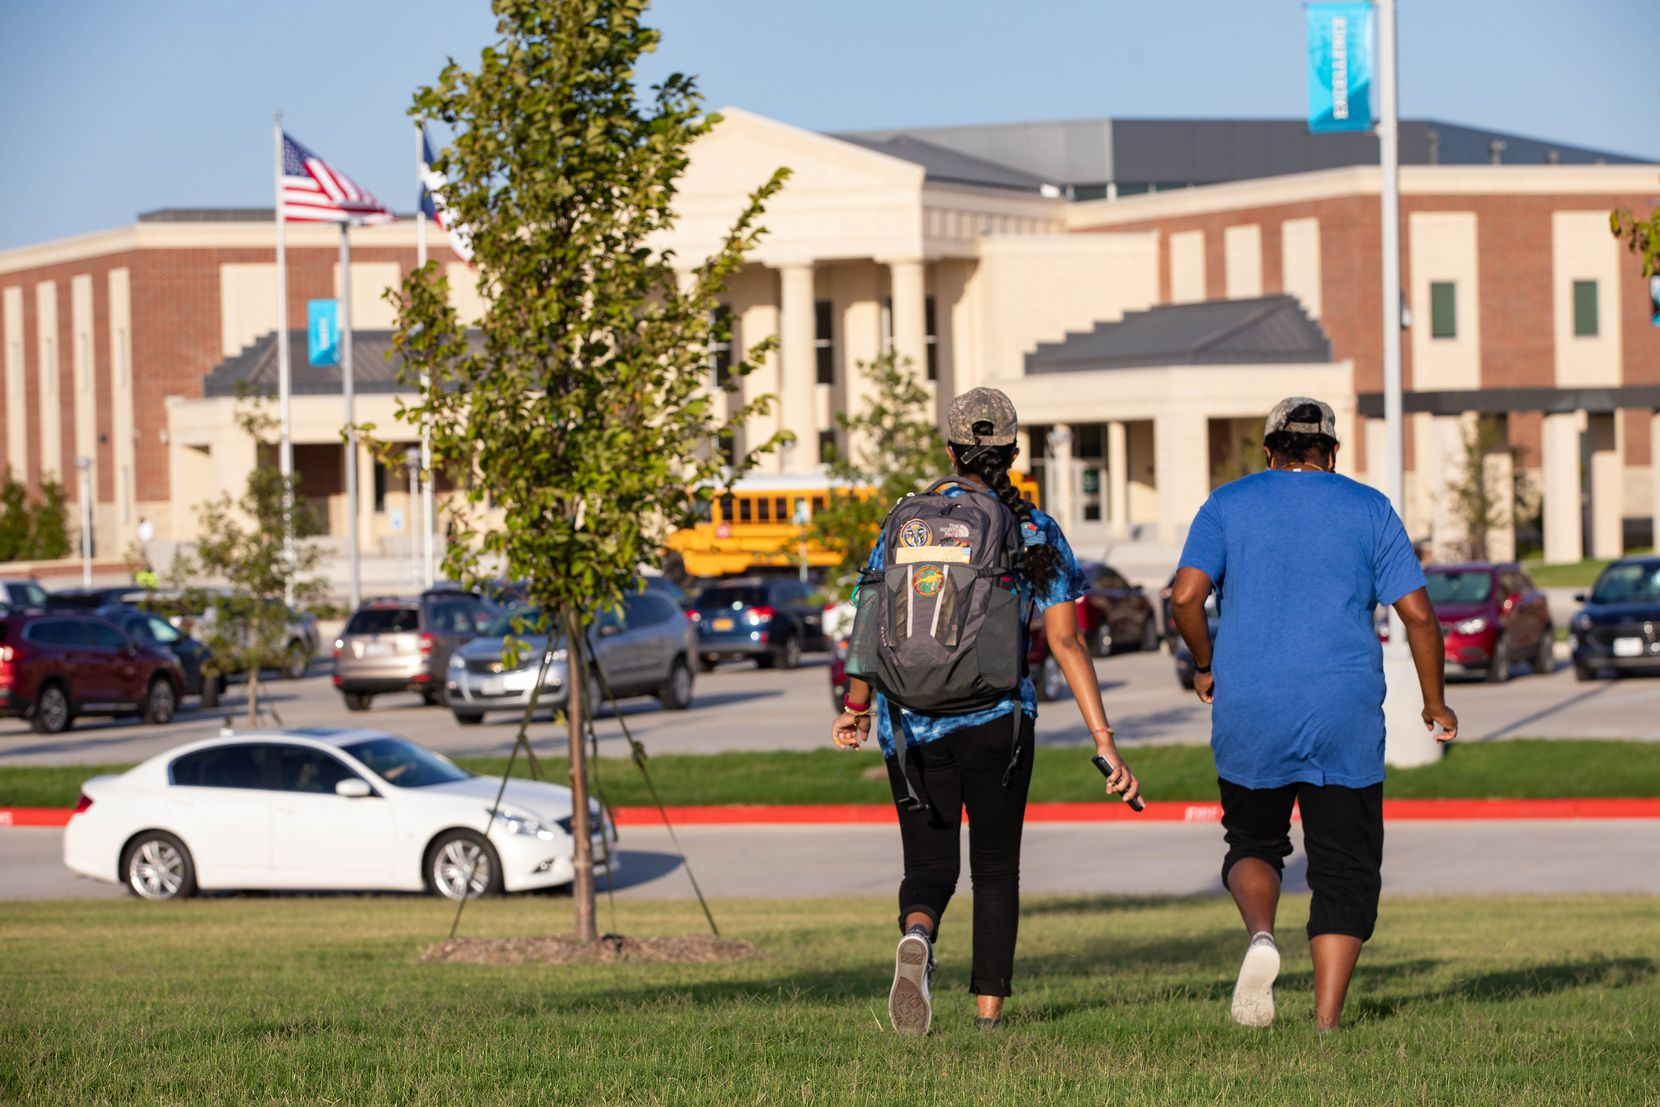 A mother walked her daughter to class at Rock Hill High School in Frisco on Wednesday for her first day back amid the pandemic. Prosper ISD is one of three that opened its doors for students Wednesday.